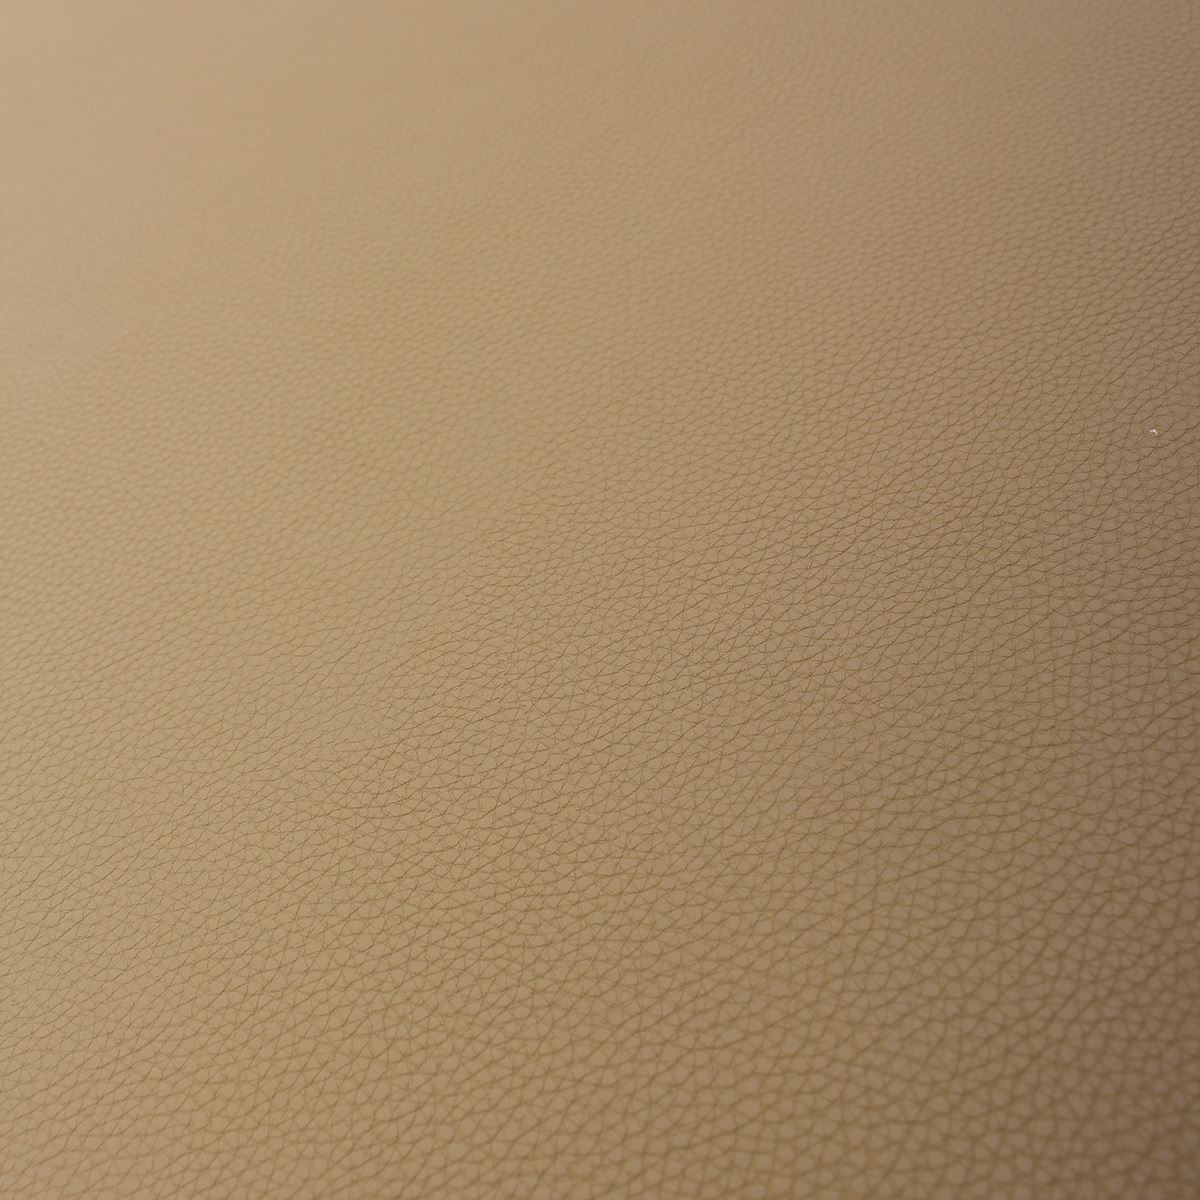 Nova-Faux-Leatherette-Artificial-Leather-Heavy-Grain-Upholstery-Vehicle-Fabric thumbnail 30